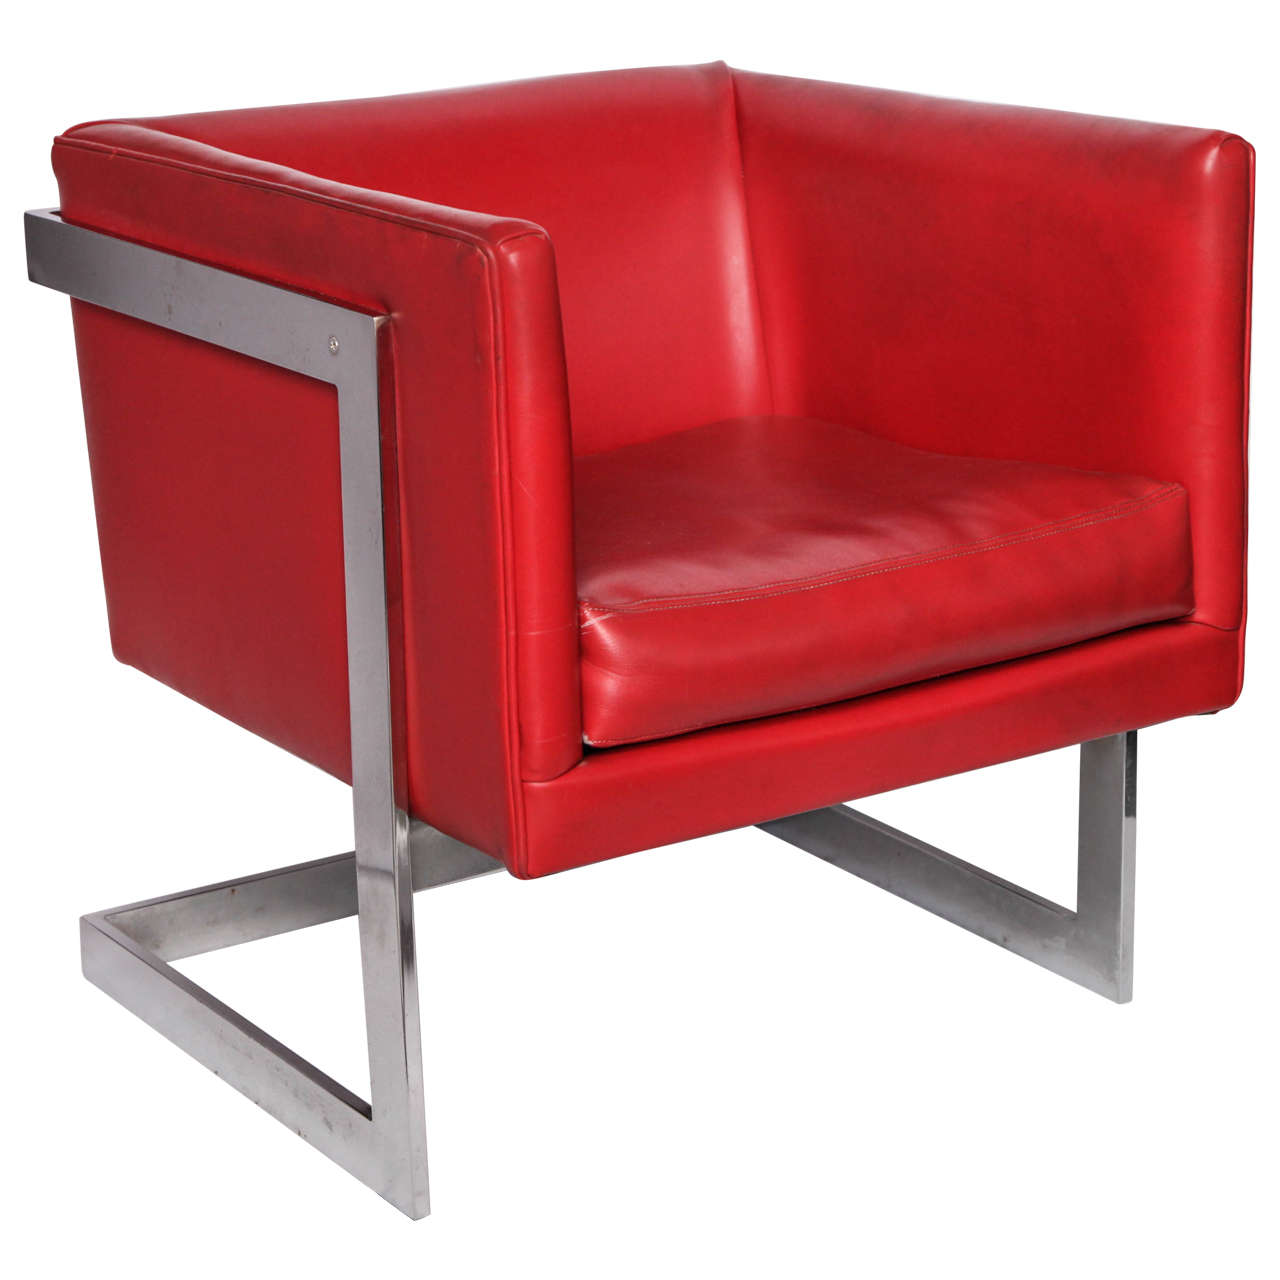 1970s Modernist Cube Chair By Milo Baughman At 1stdibs